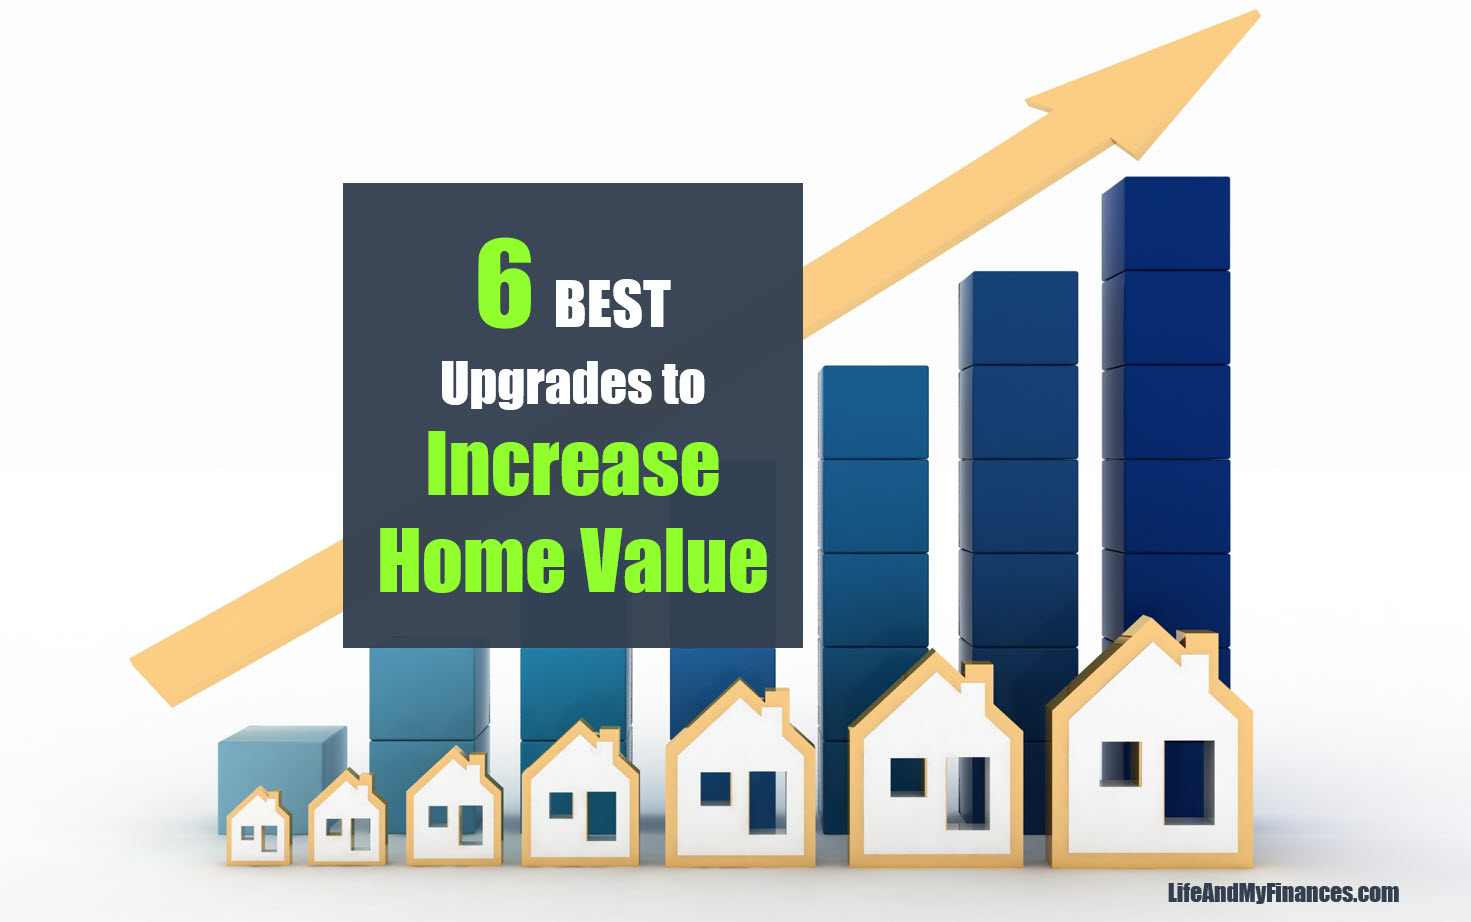 6 Best Upgrades To Increase Home Value (Without Spending A Fortune!)